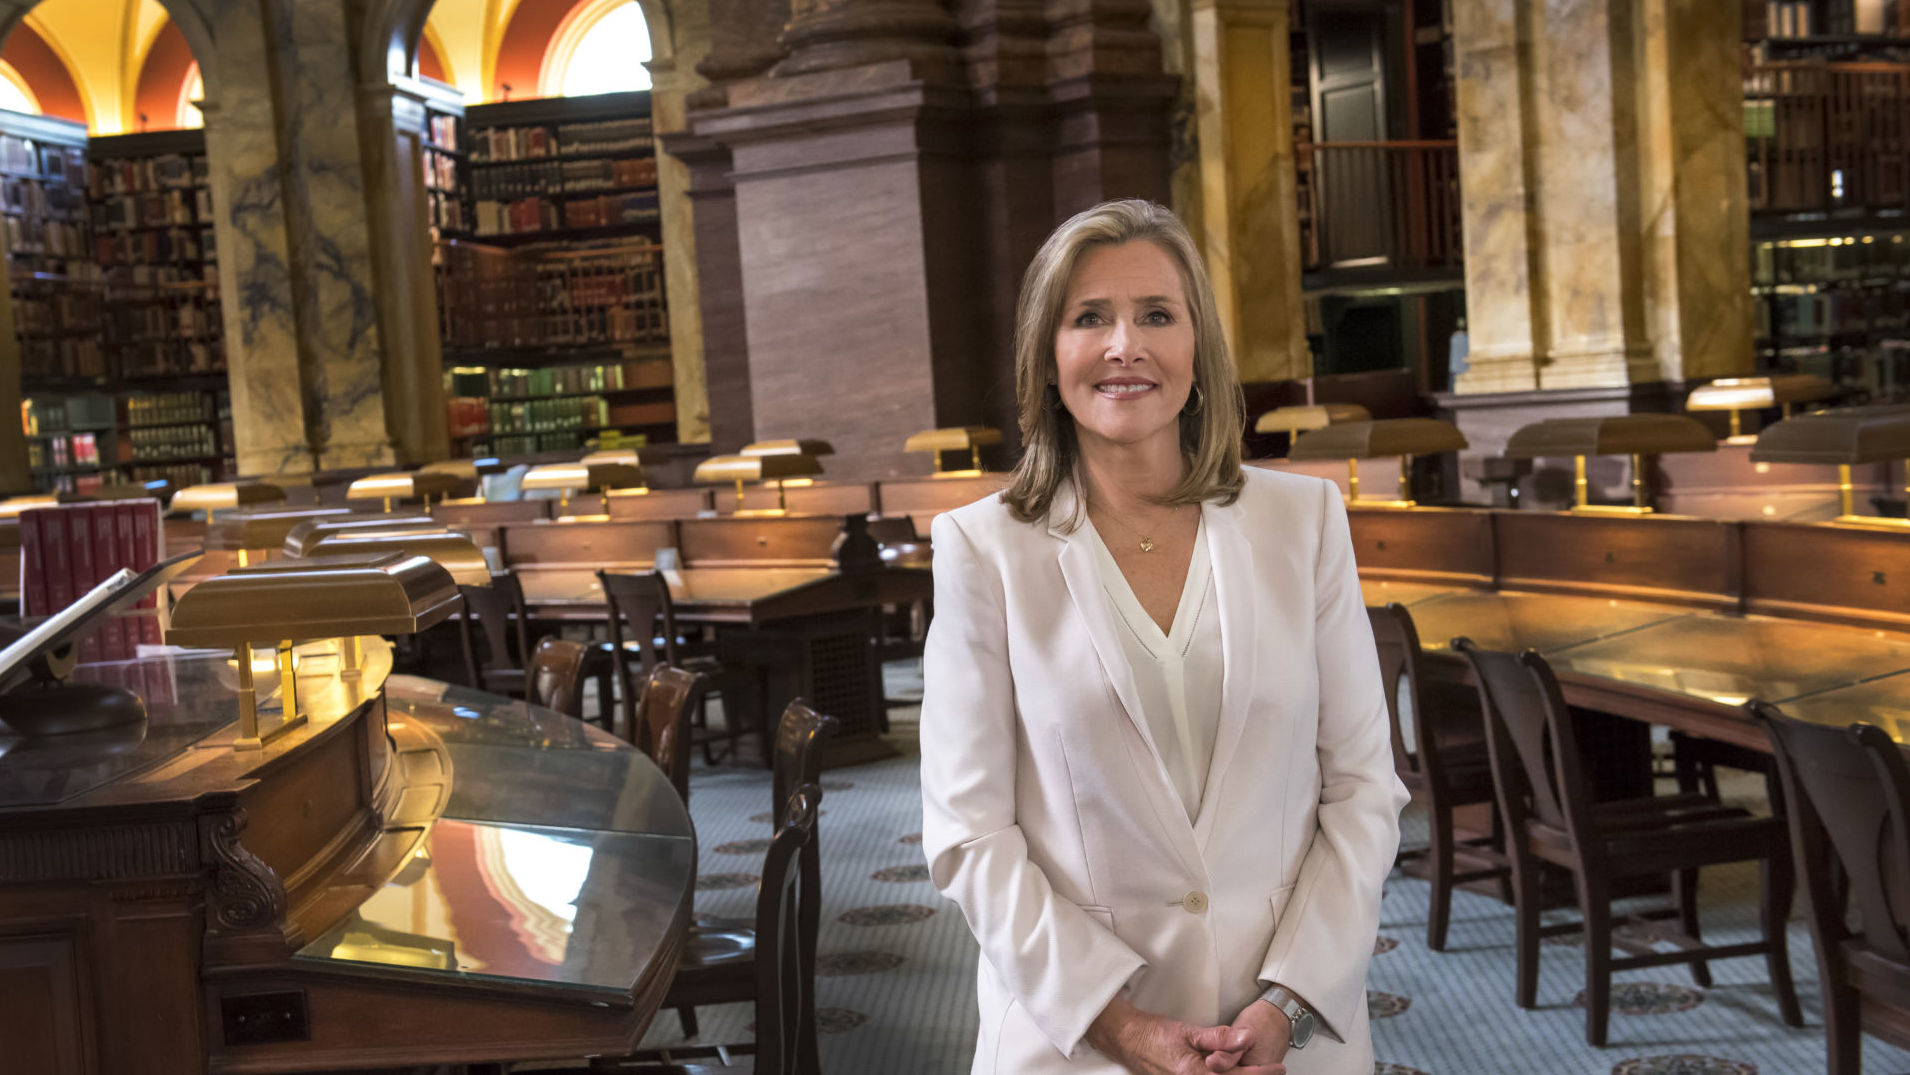 Meredith Vieira, at the Library of Congress Jefferson Reading Room. She is host for the PBS show, The Great American Read.